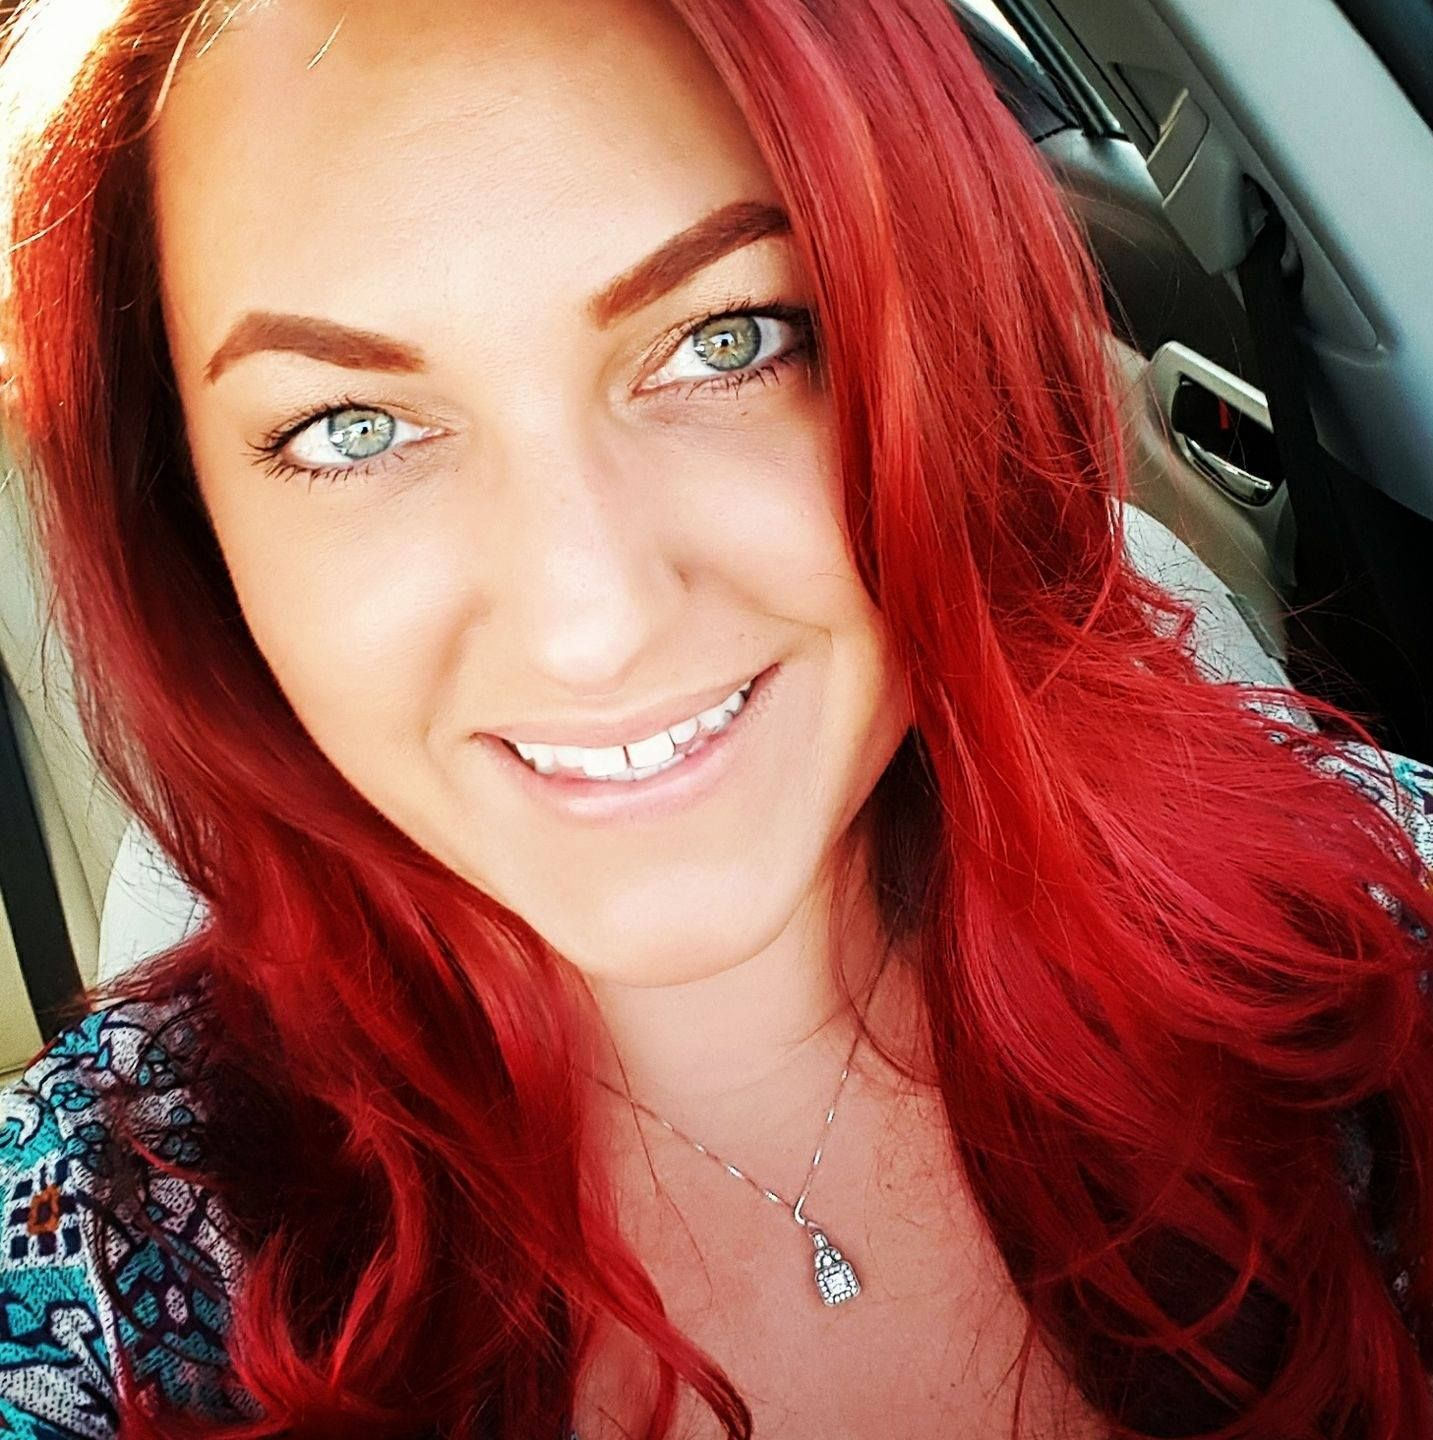 singles in paige Meet single women in page az online & chat in the forums dhu is a 100% free dating site to find single women in page.